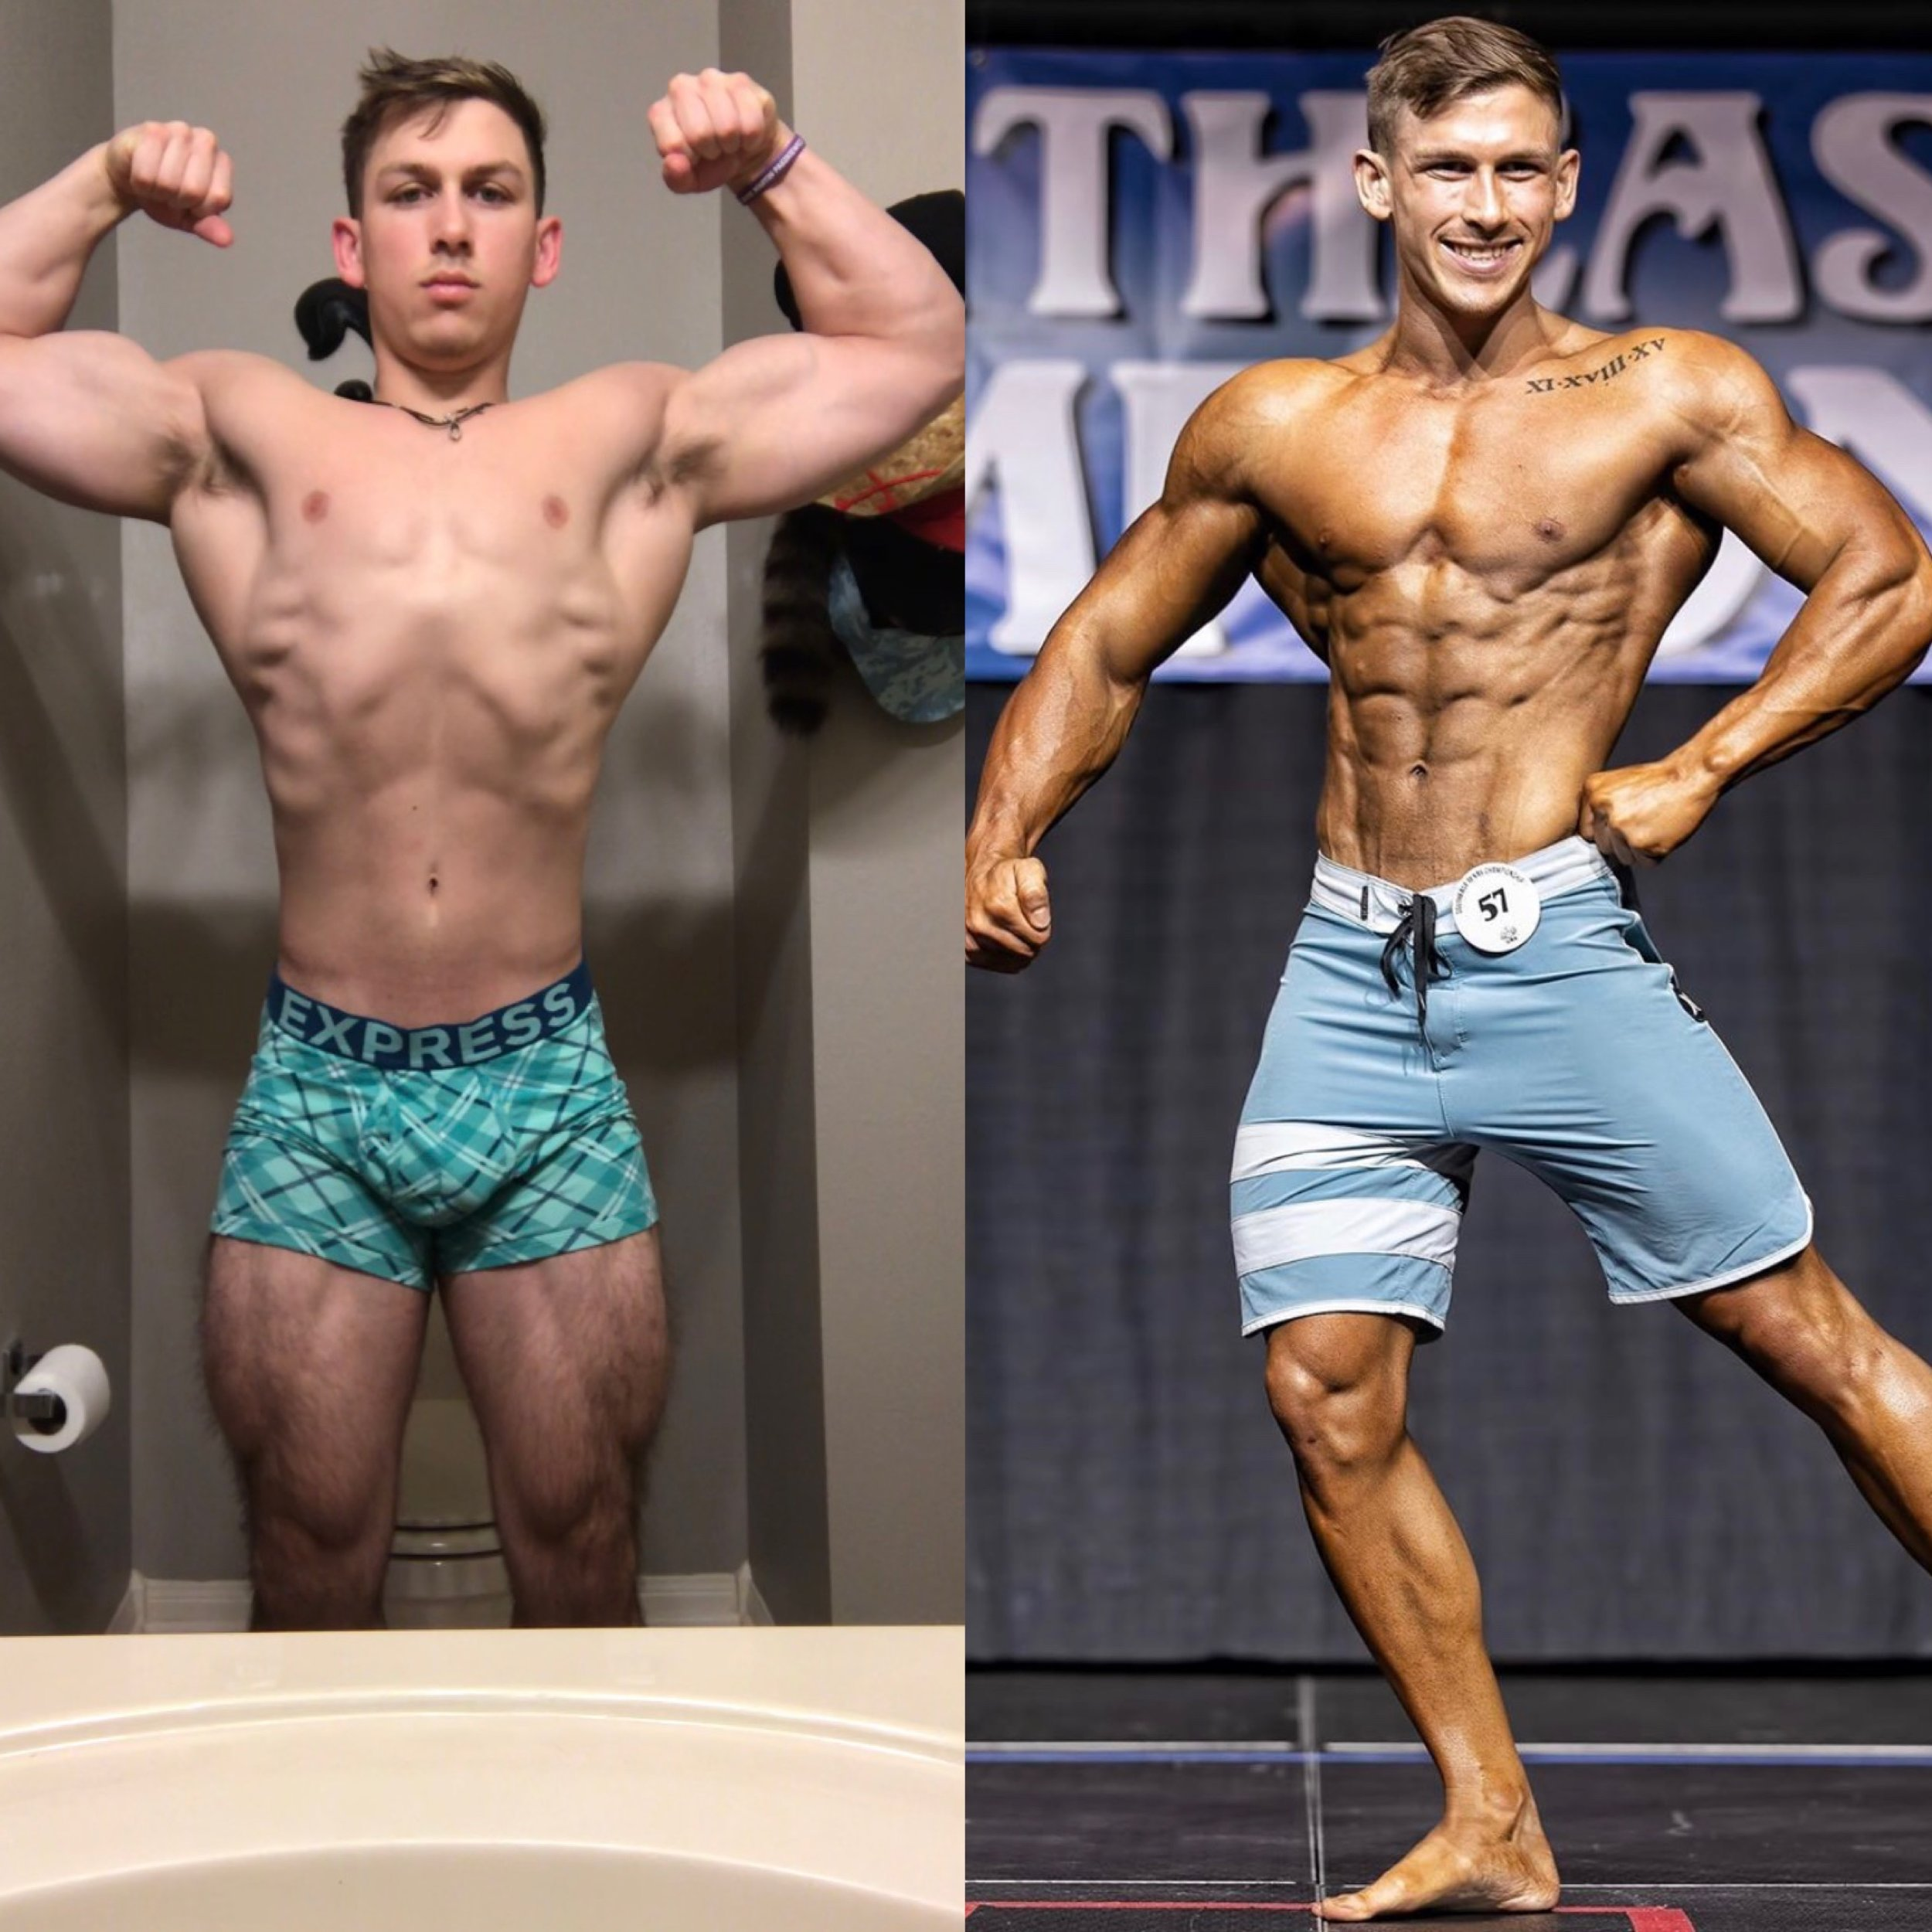 Going into my first ever prep for a bodybuilding show, I had no knowledge of what to eat or even remotely how to lose body fat. I reached out to David and he was able to provide more than enough information. He was there every step of the way! We've worked together for the past 2 years and I am extremely satisfied to say the least!